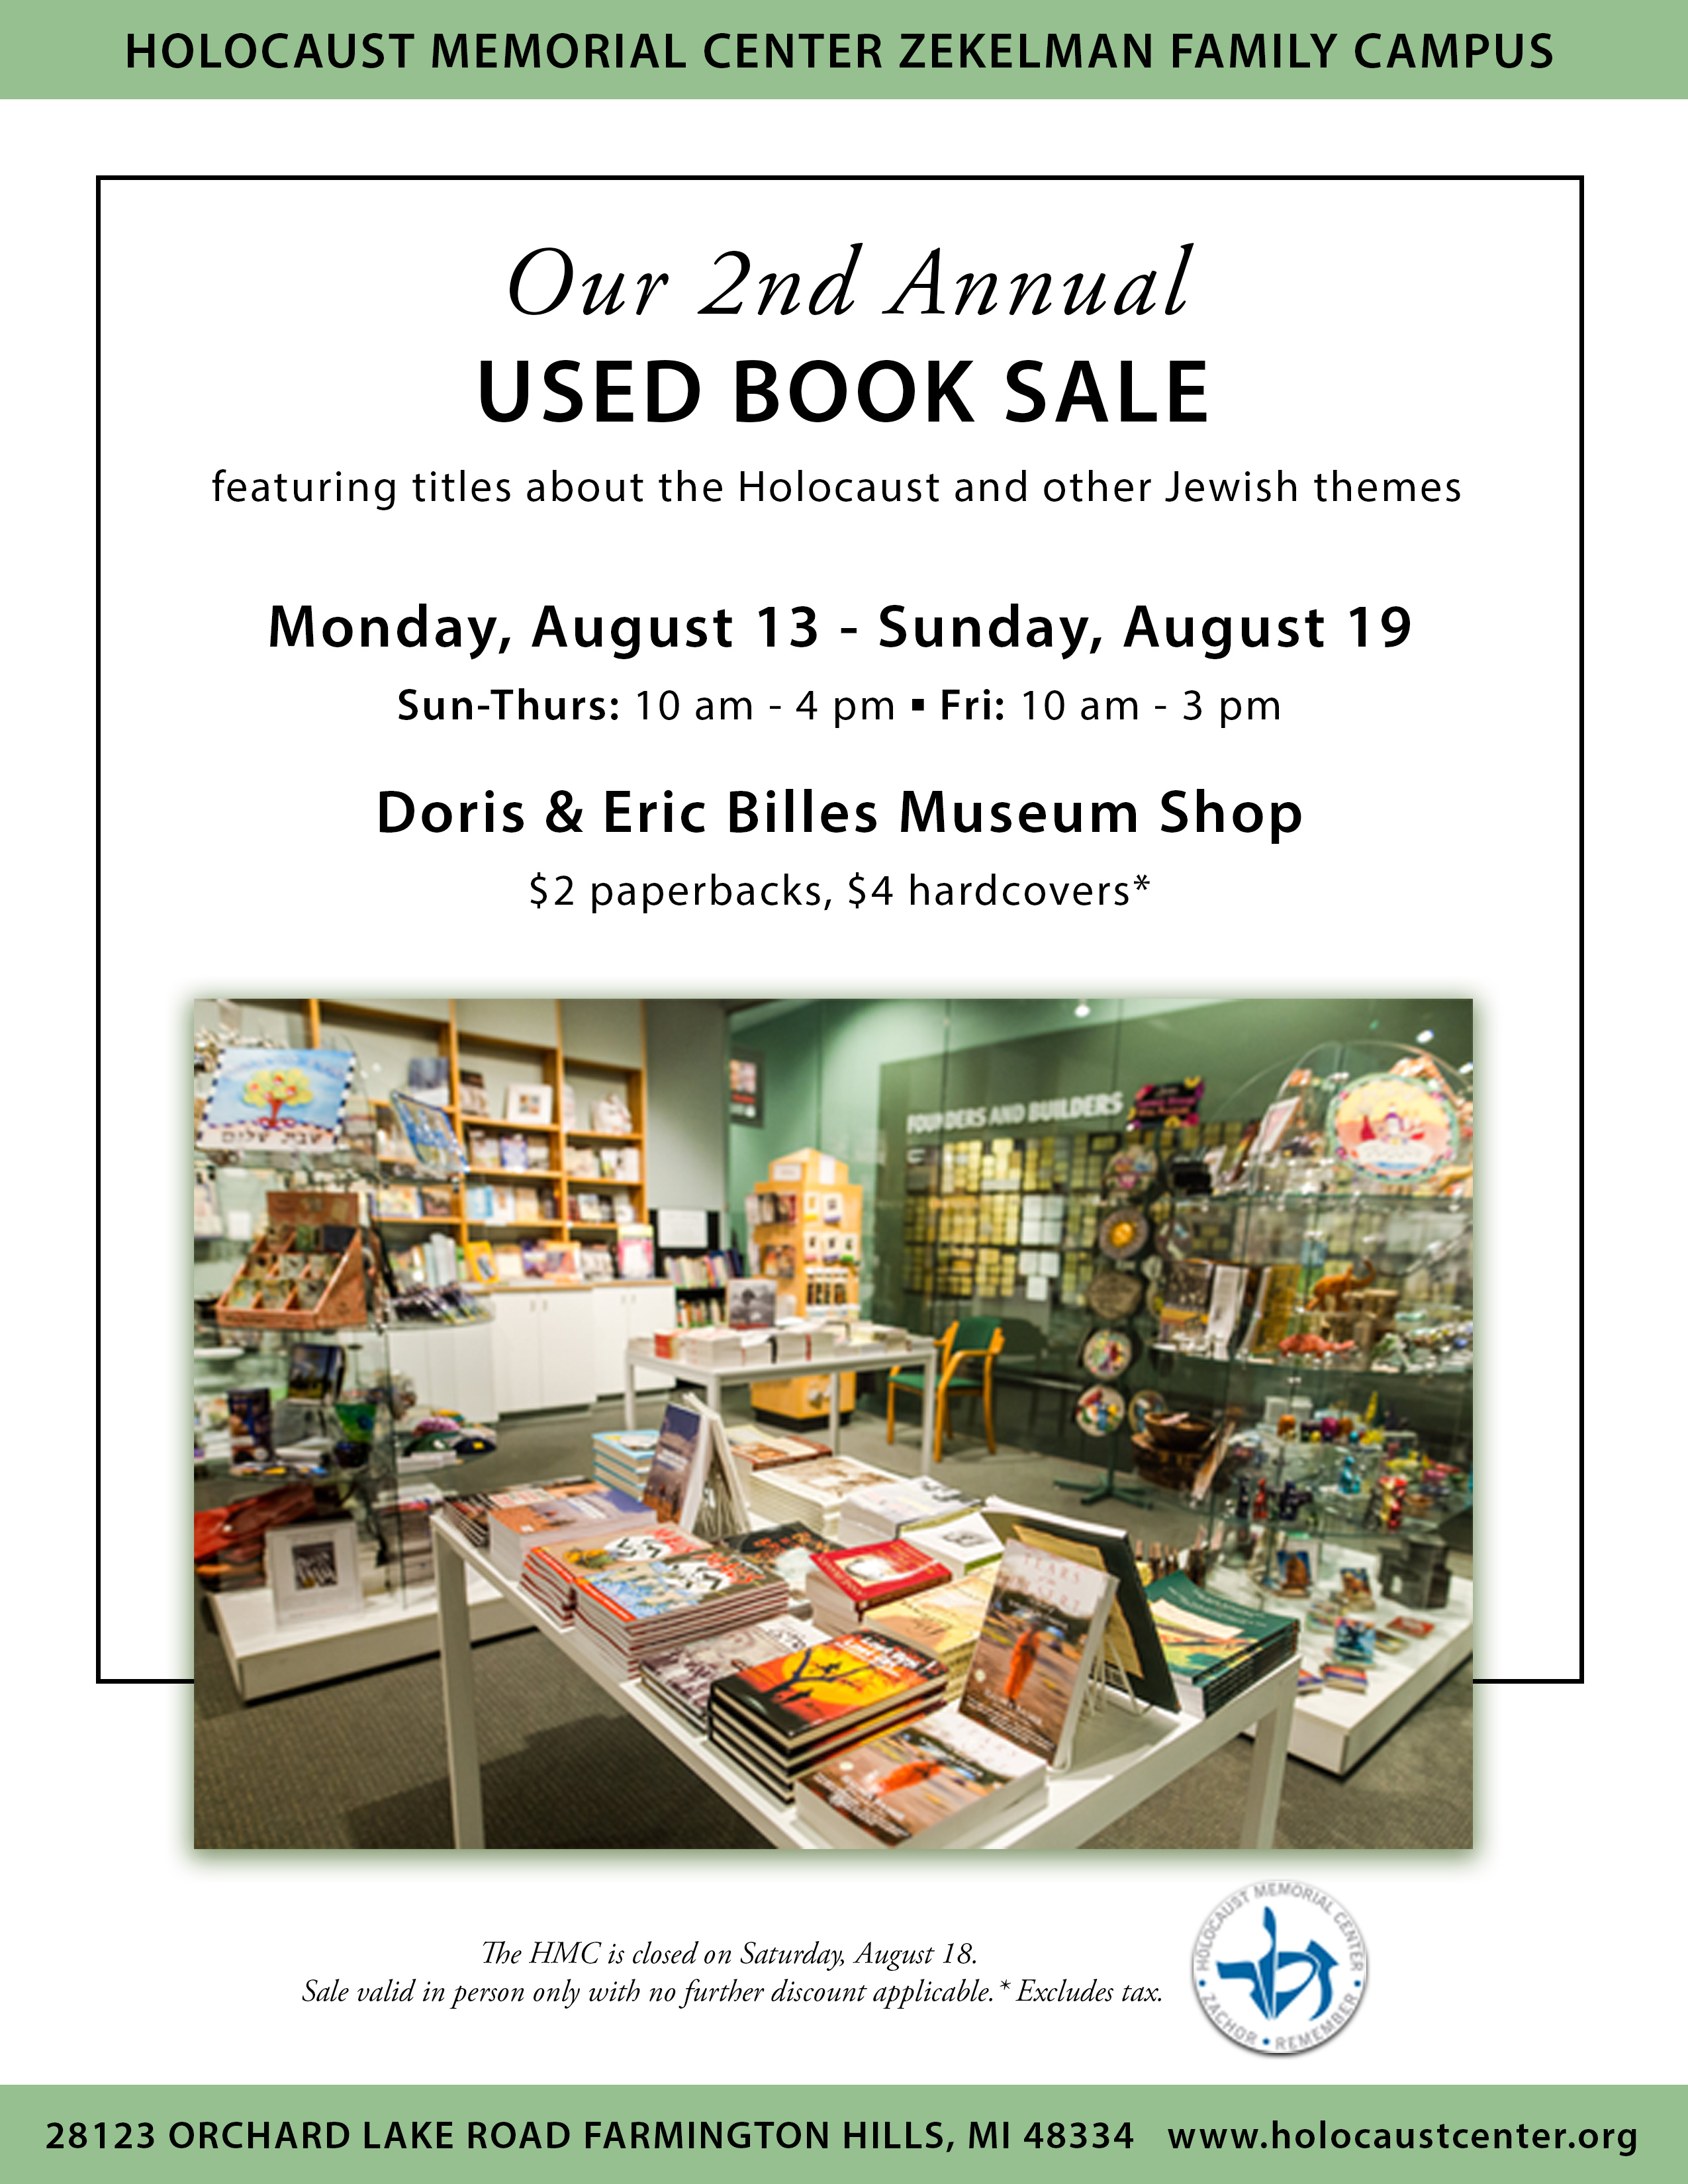 2nd Annual Used Book Sale Holocaust Memorial Center